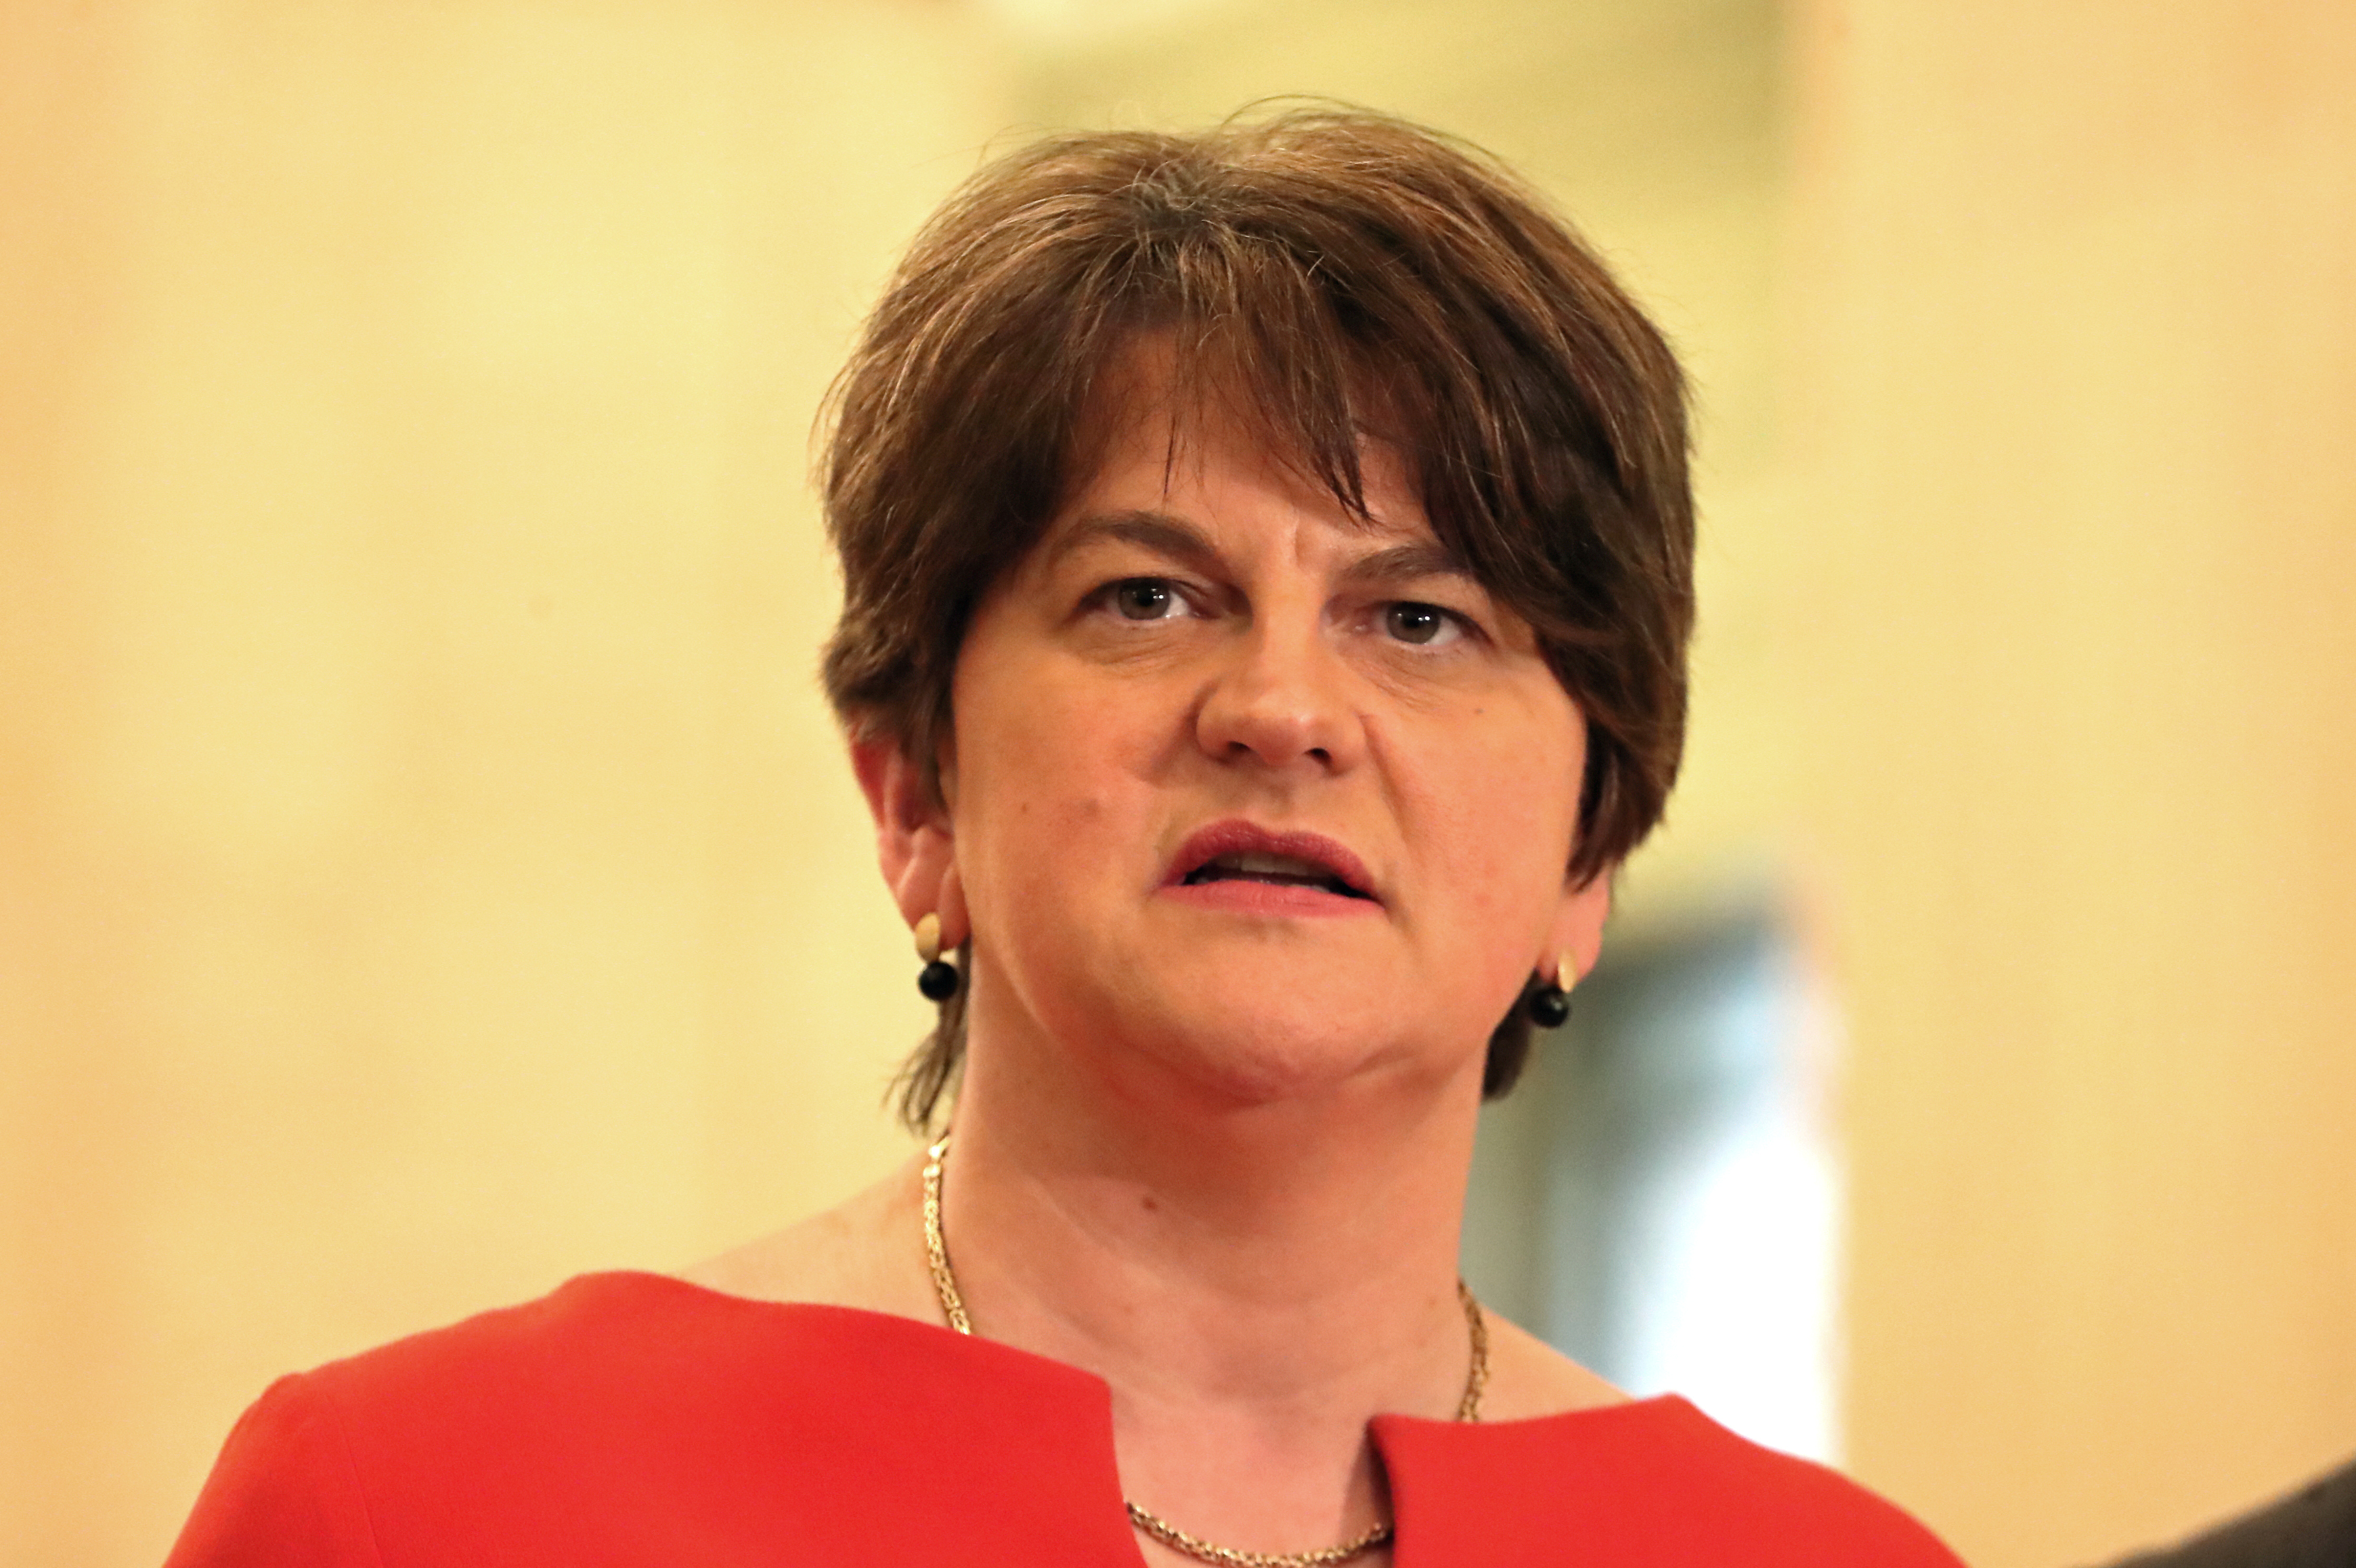 First Minister Arlene Foster of the DUP speaks in the Great Hall in the Stormont Parliament Buildings in Belfast, Northern Ireland, January 13, 2020. Liam McBurney/Pool via REUTERS/File Photo